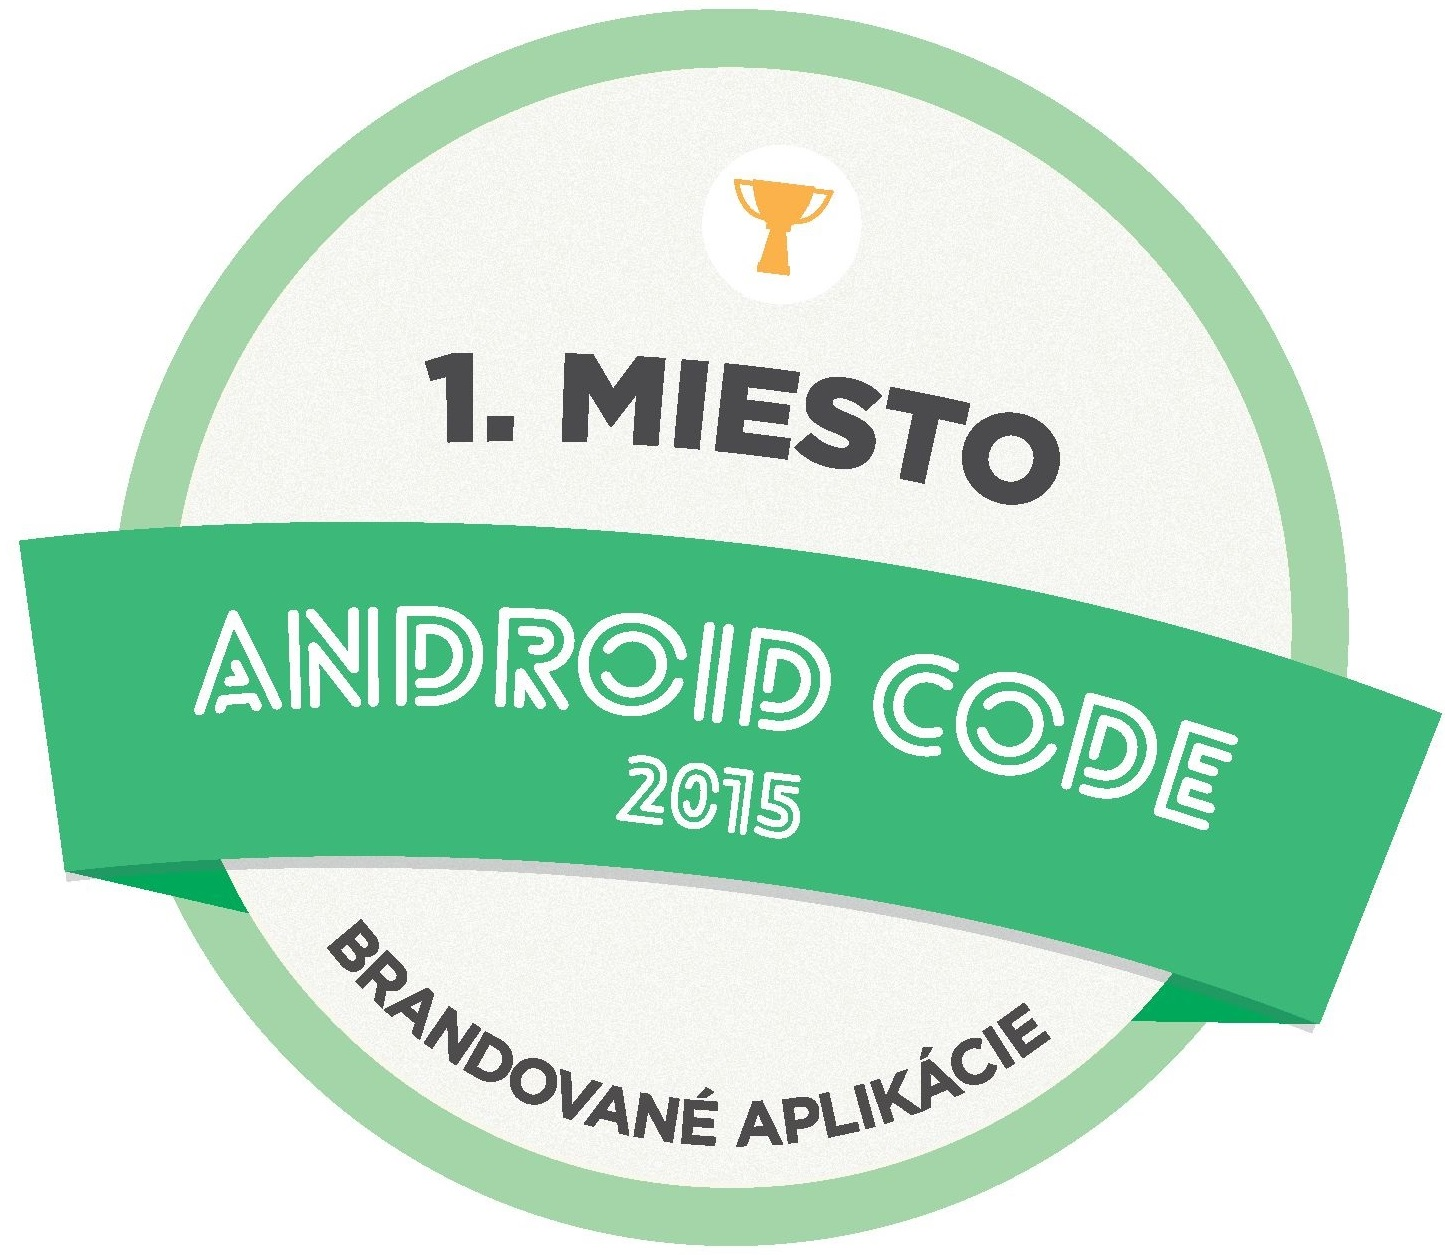 Android code 2016